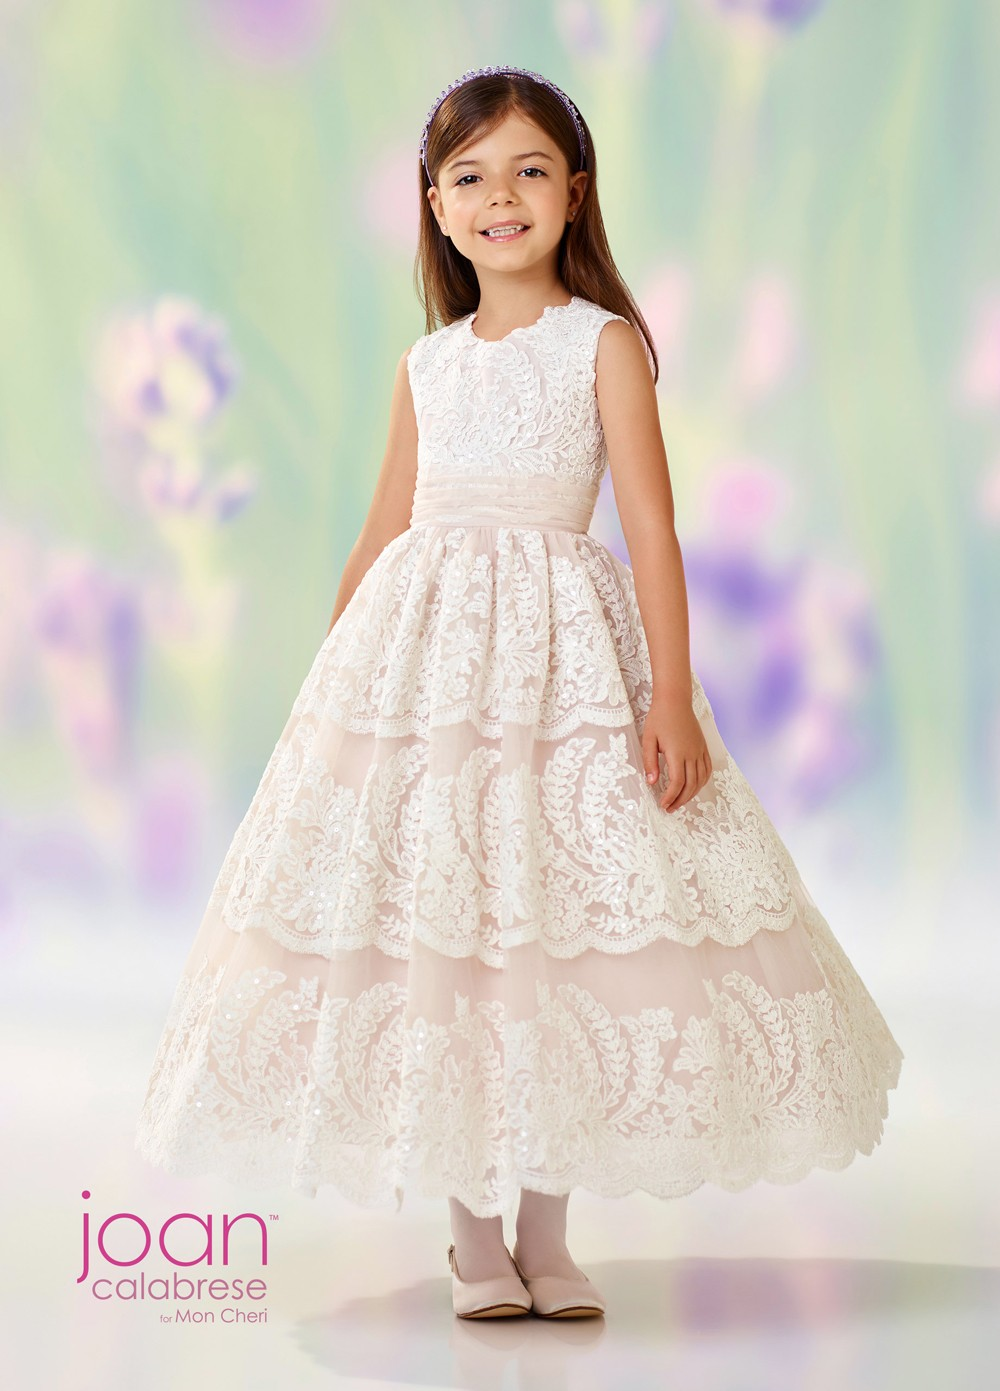 b9944506116 Joan Calabrese 118309 Lace Flower Girl Dress. Tap to expand